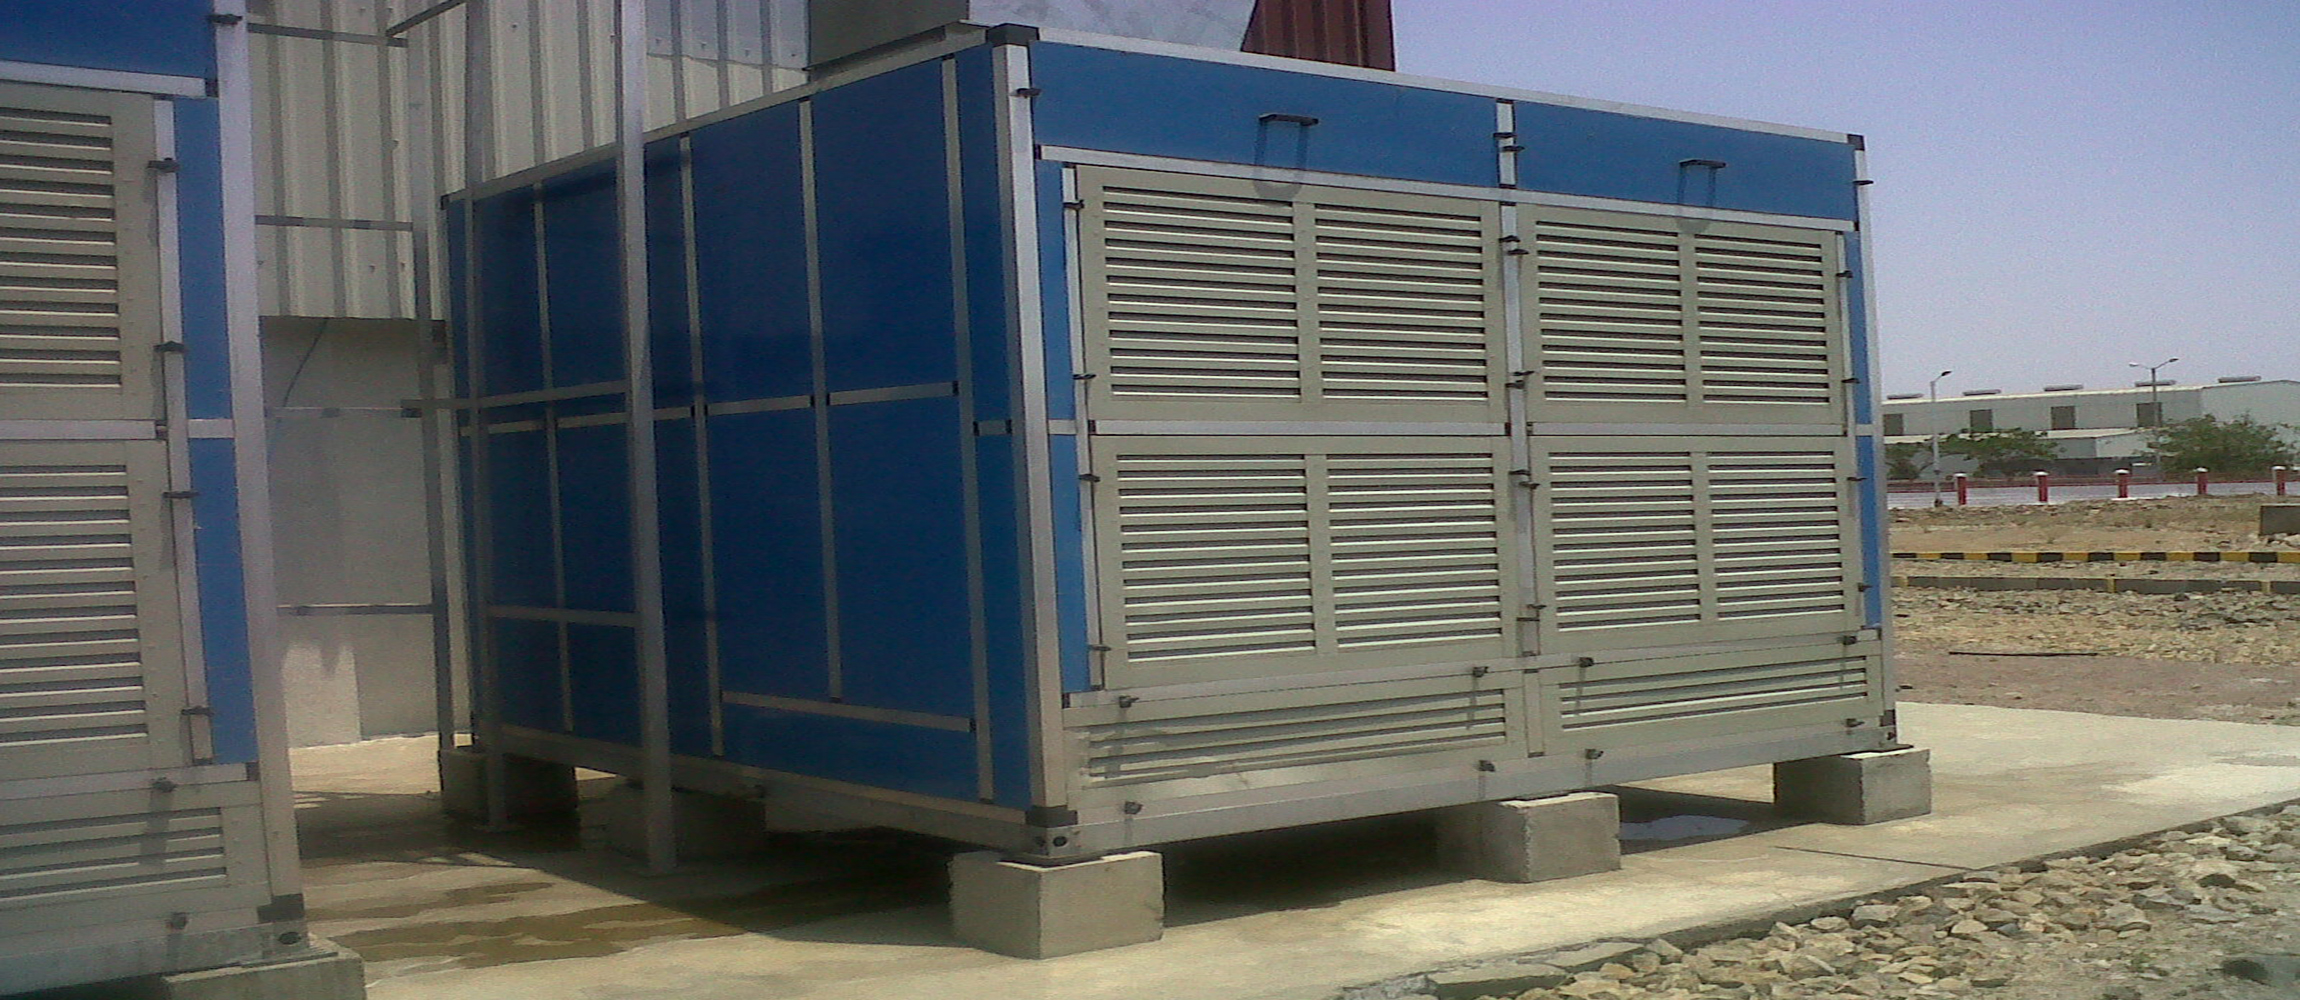 Industrial Air Coolers in Pune